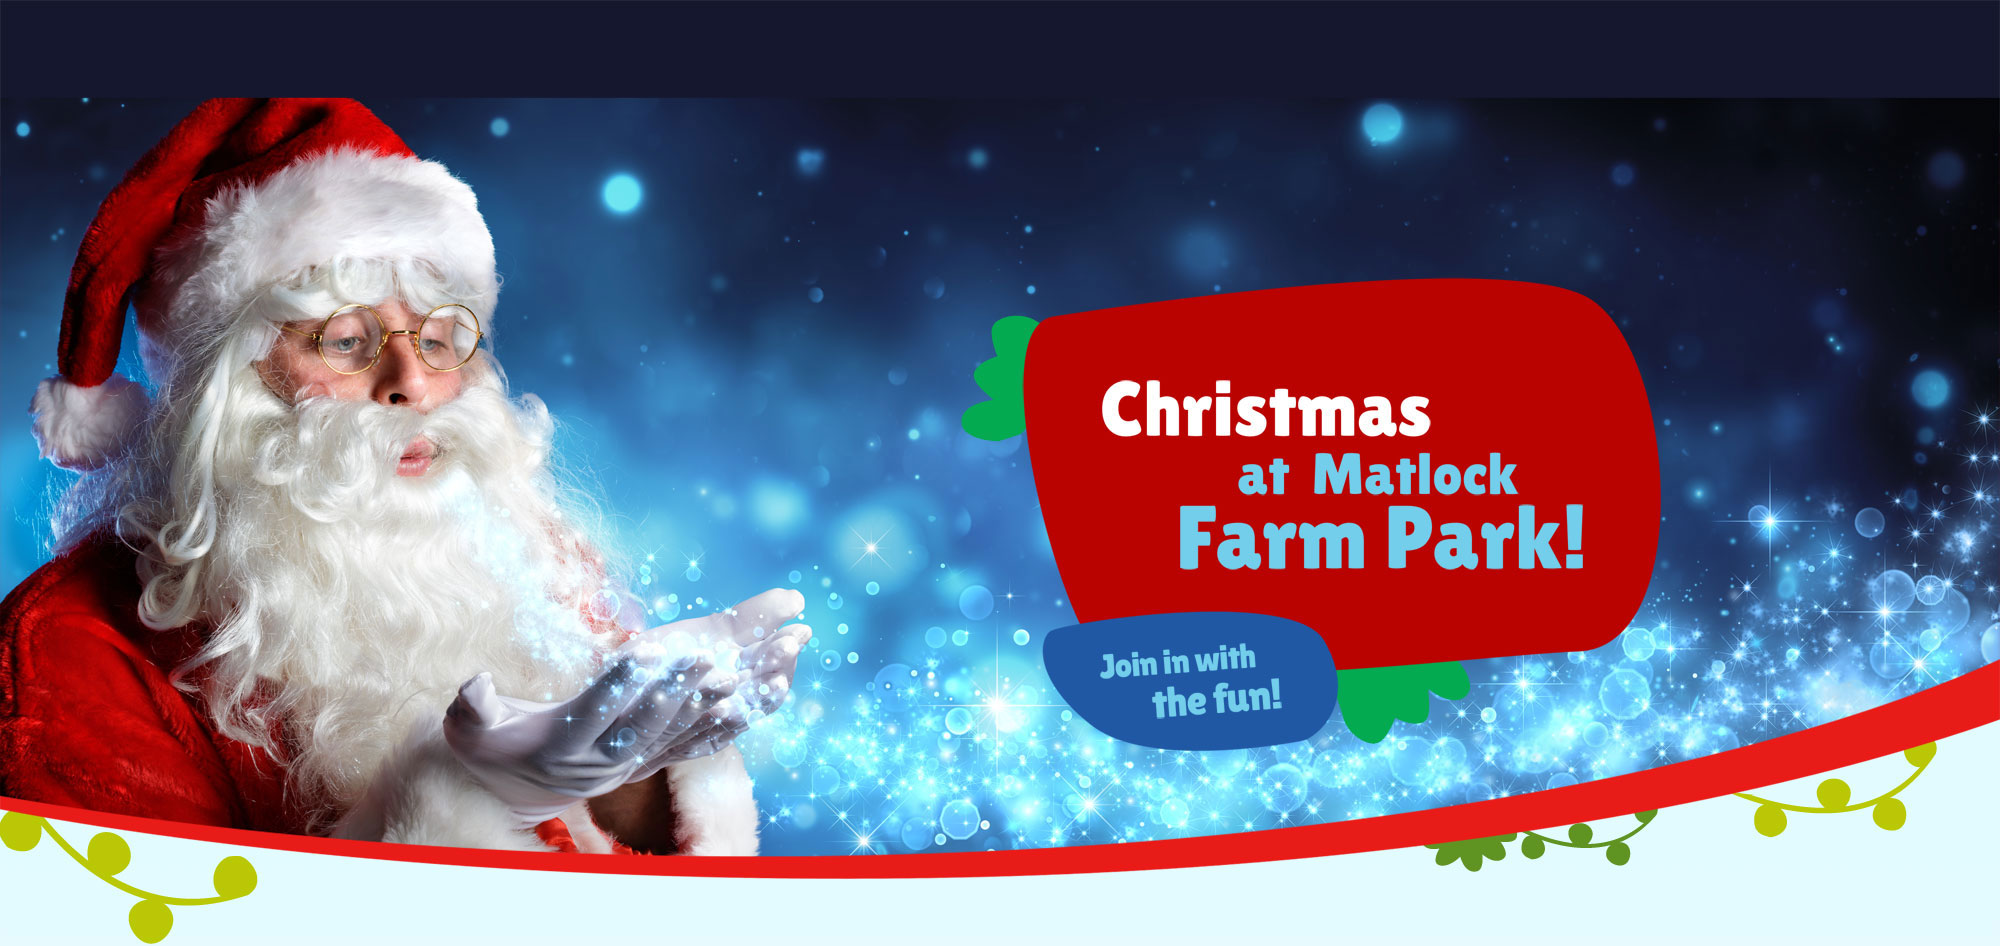 Christmas at Matlock Farm Park